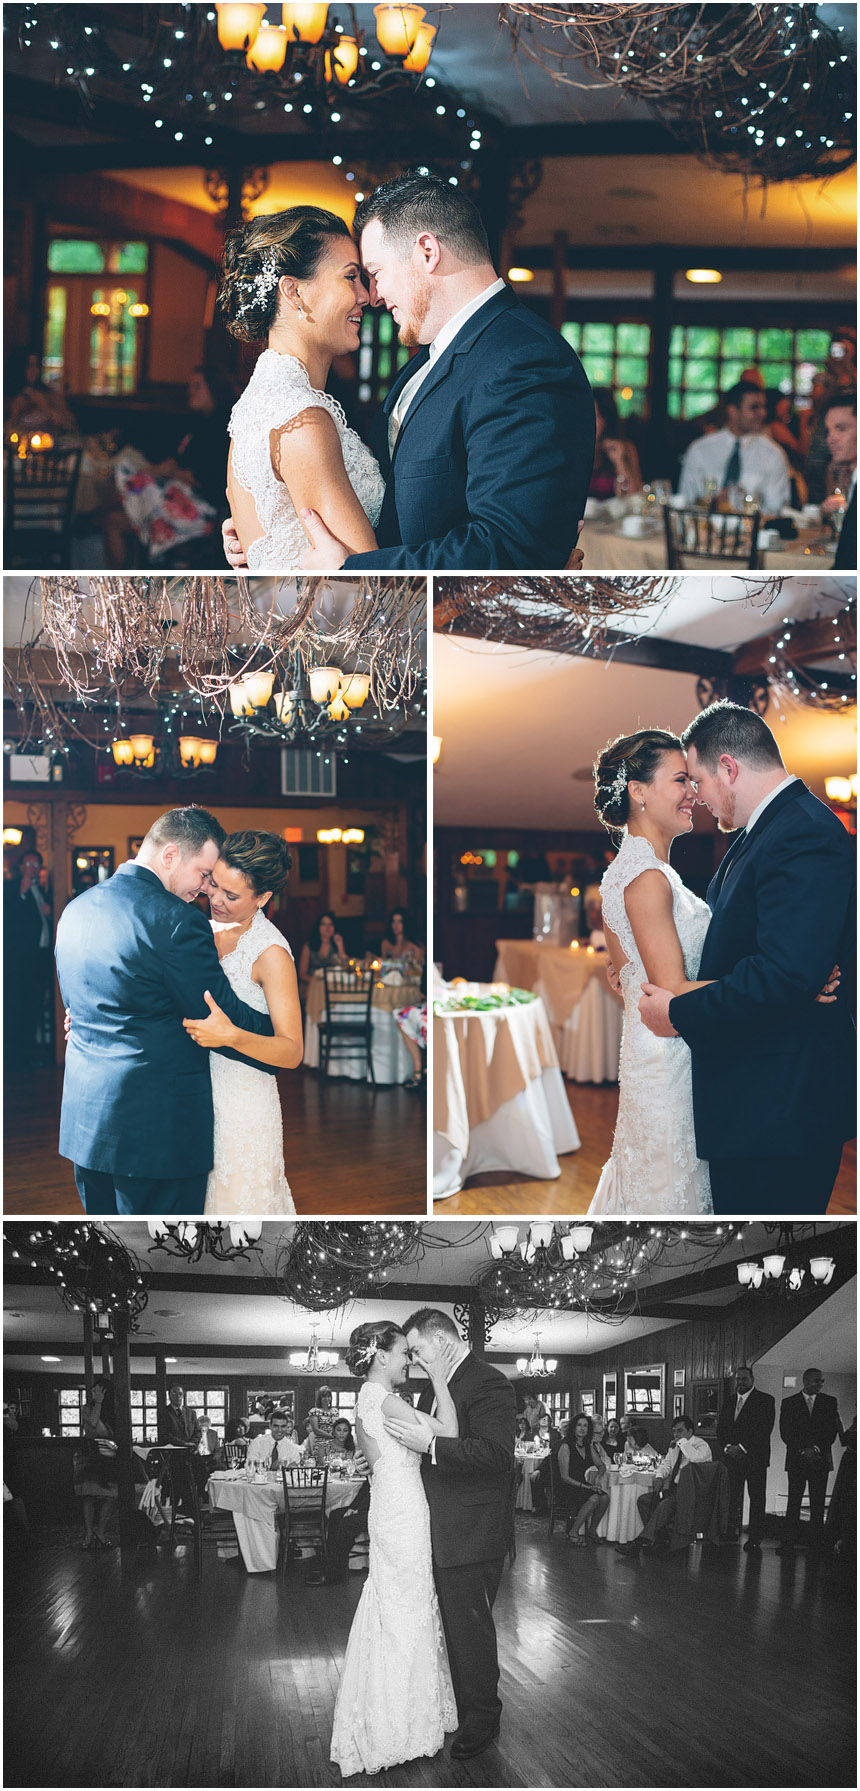 Nicole & Adam's Stroudsmoor Wedding